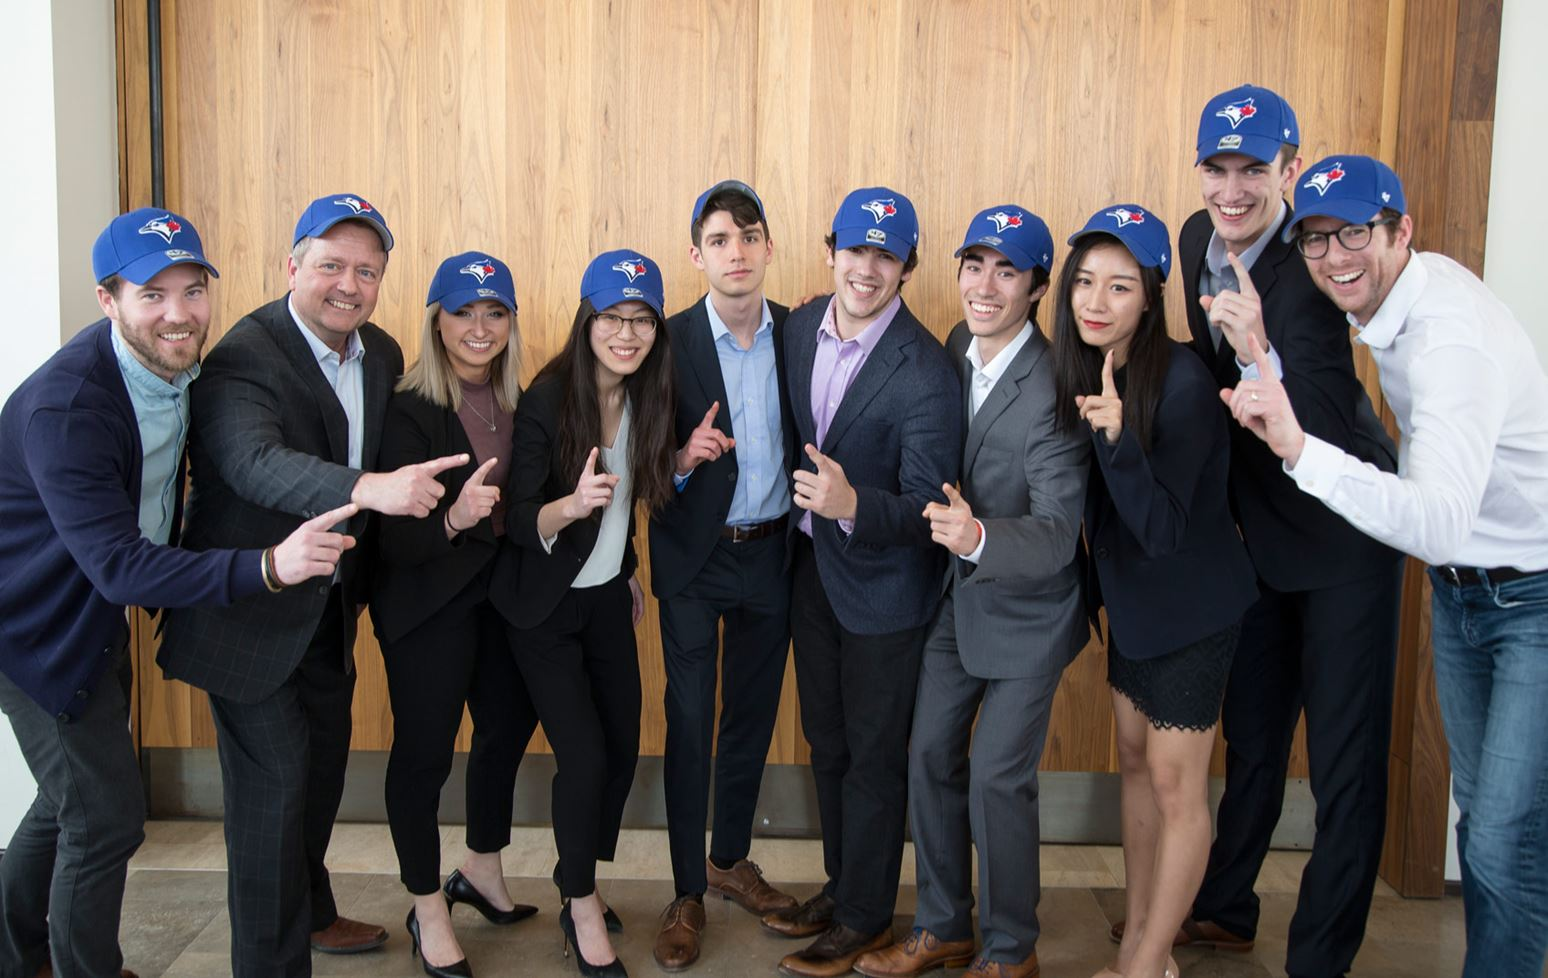 Re-imagining the Jays' fan experience at the Deloitte Innovation Forum